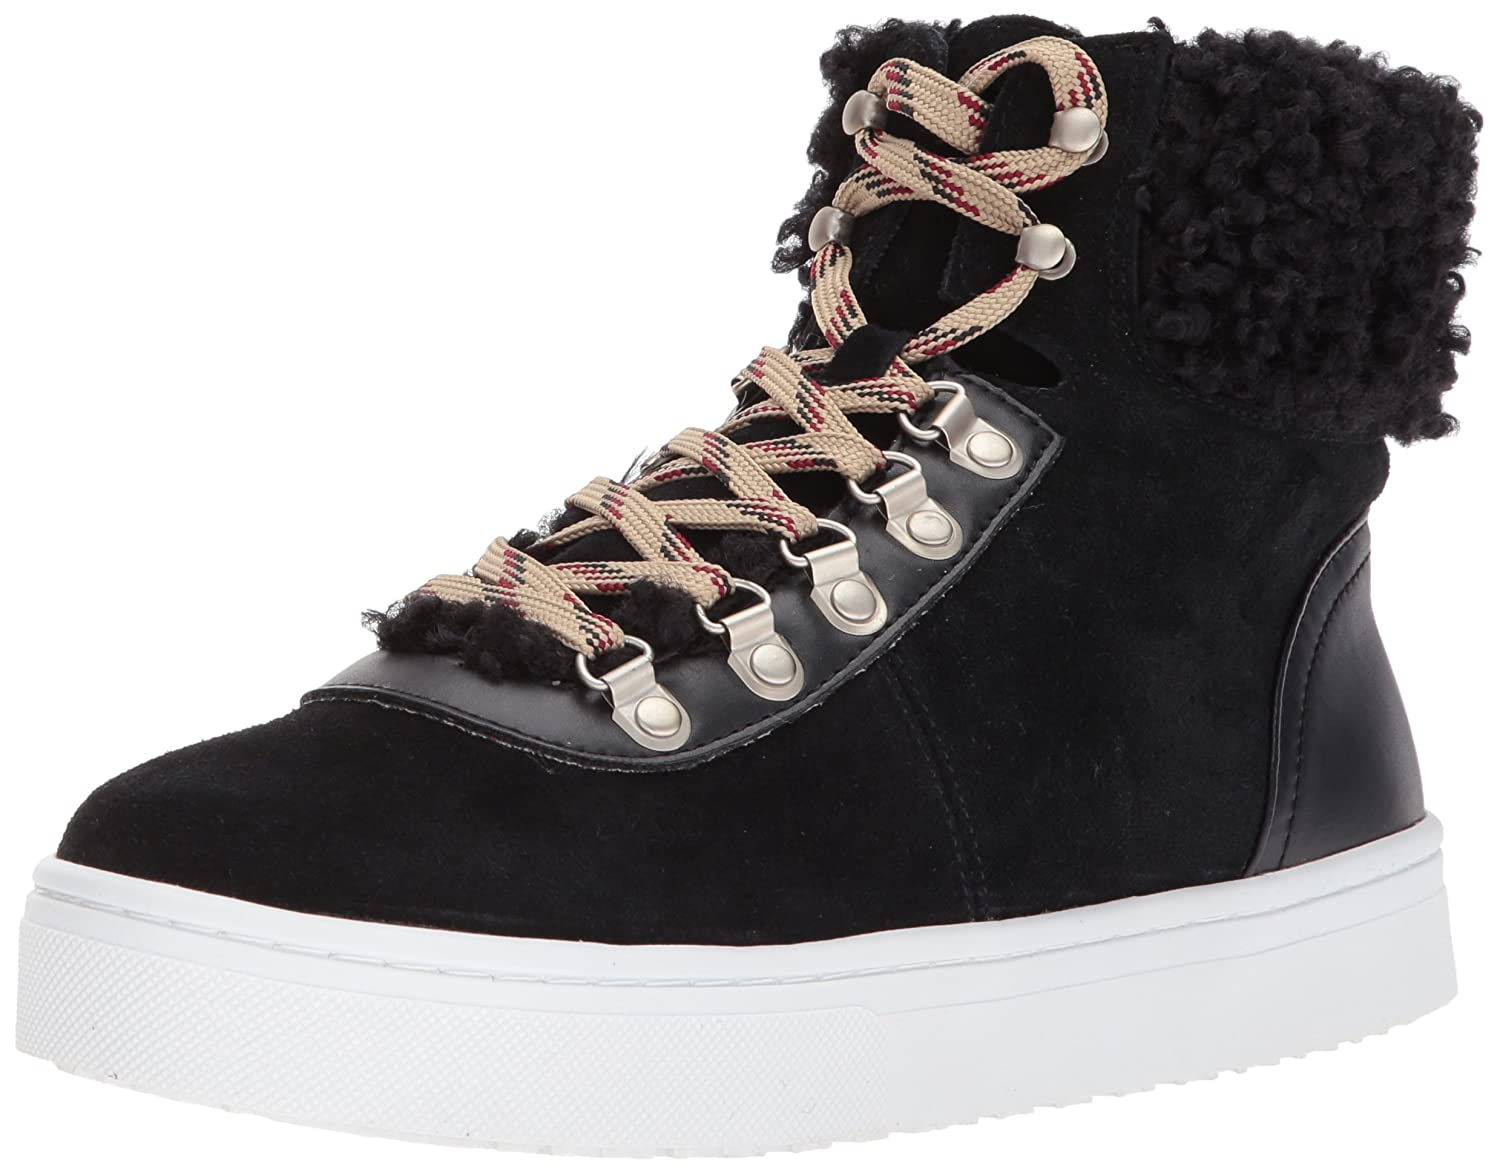 Sam Edelman Women's Luther Sneaker B0716LBQ6G 11 B(M) US|Black